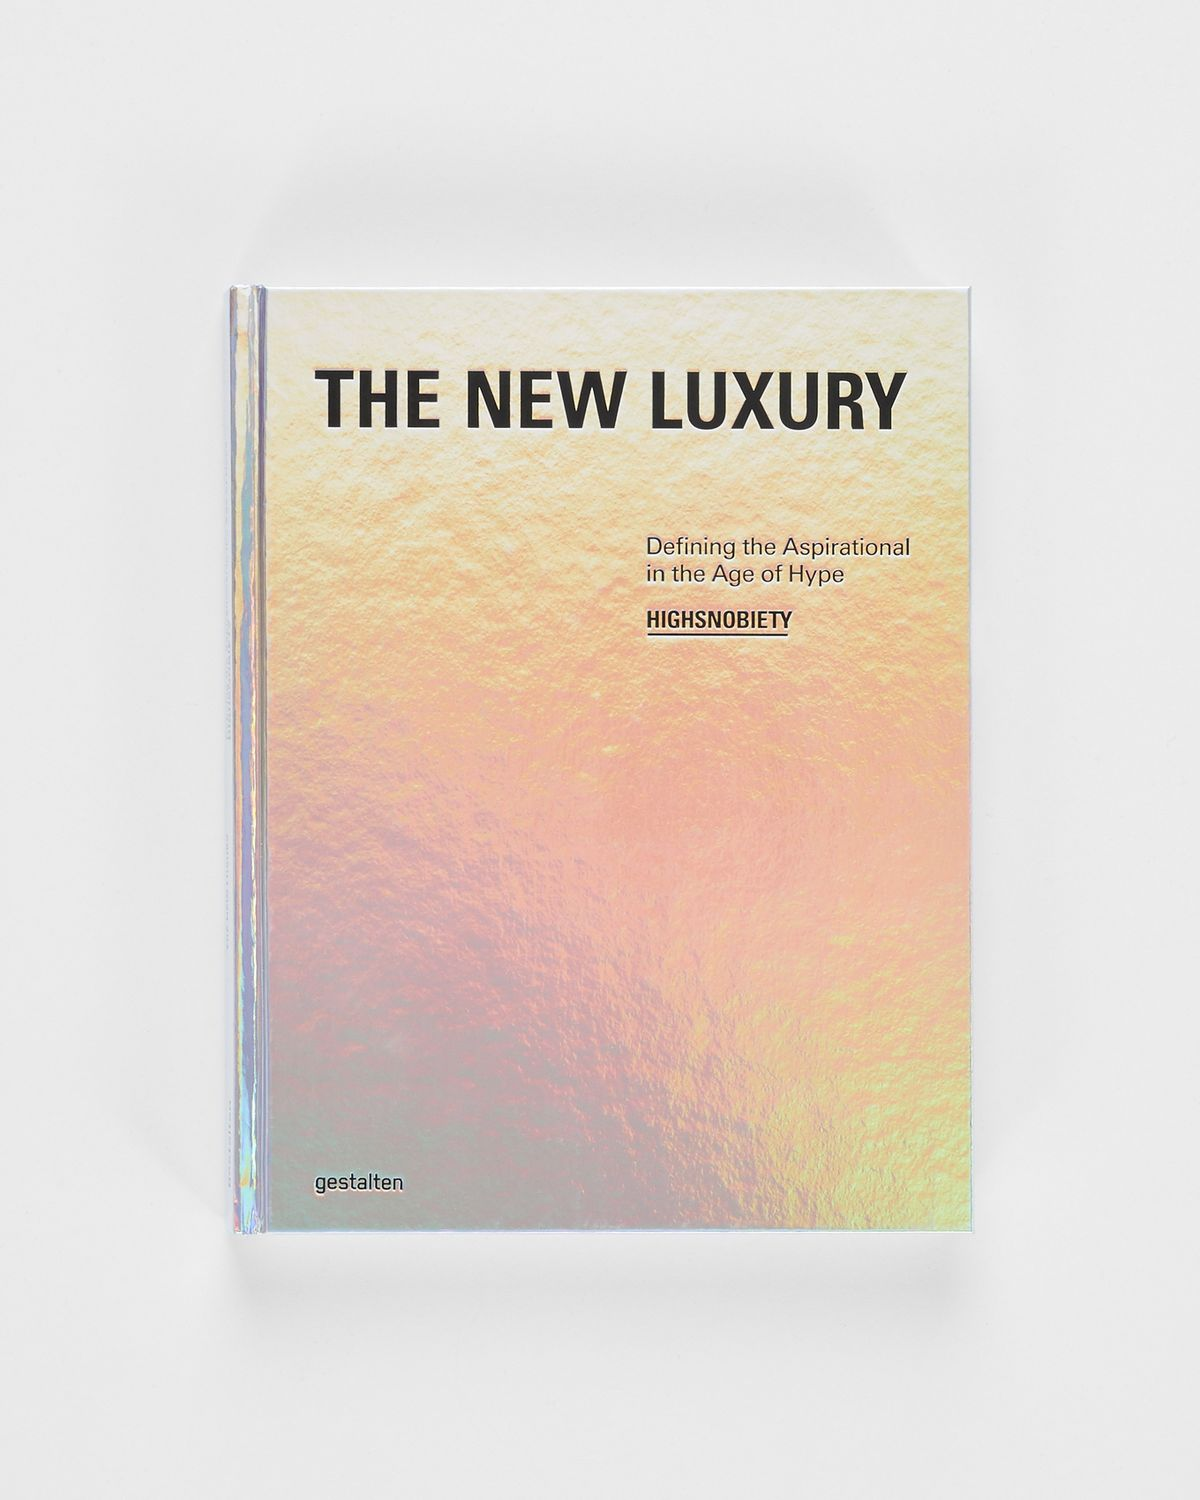 The New Luxury: Defining the Aspirational in the Age of Hype - Image 1